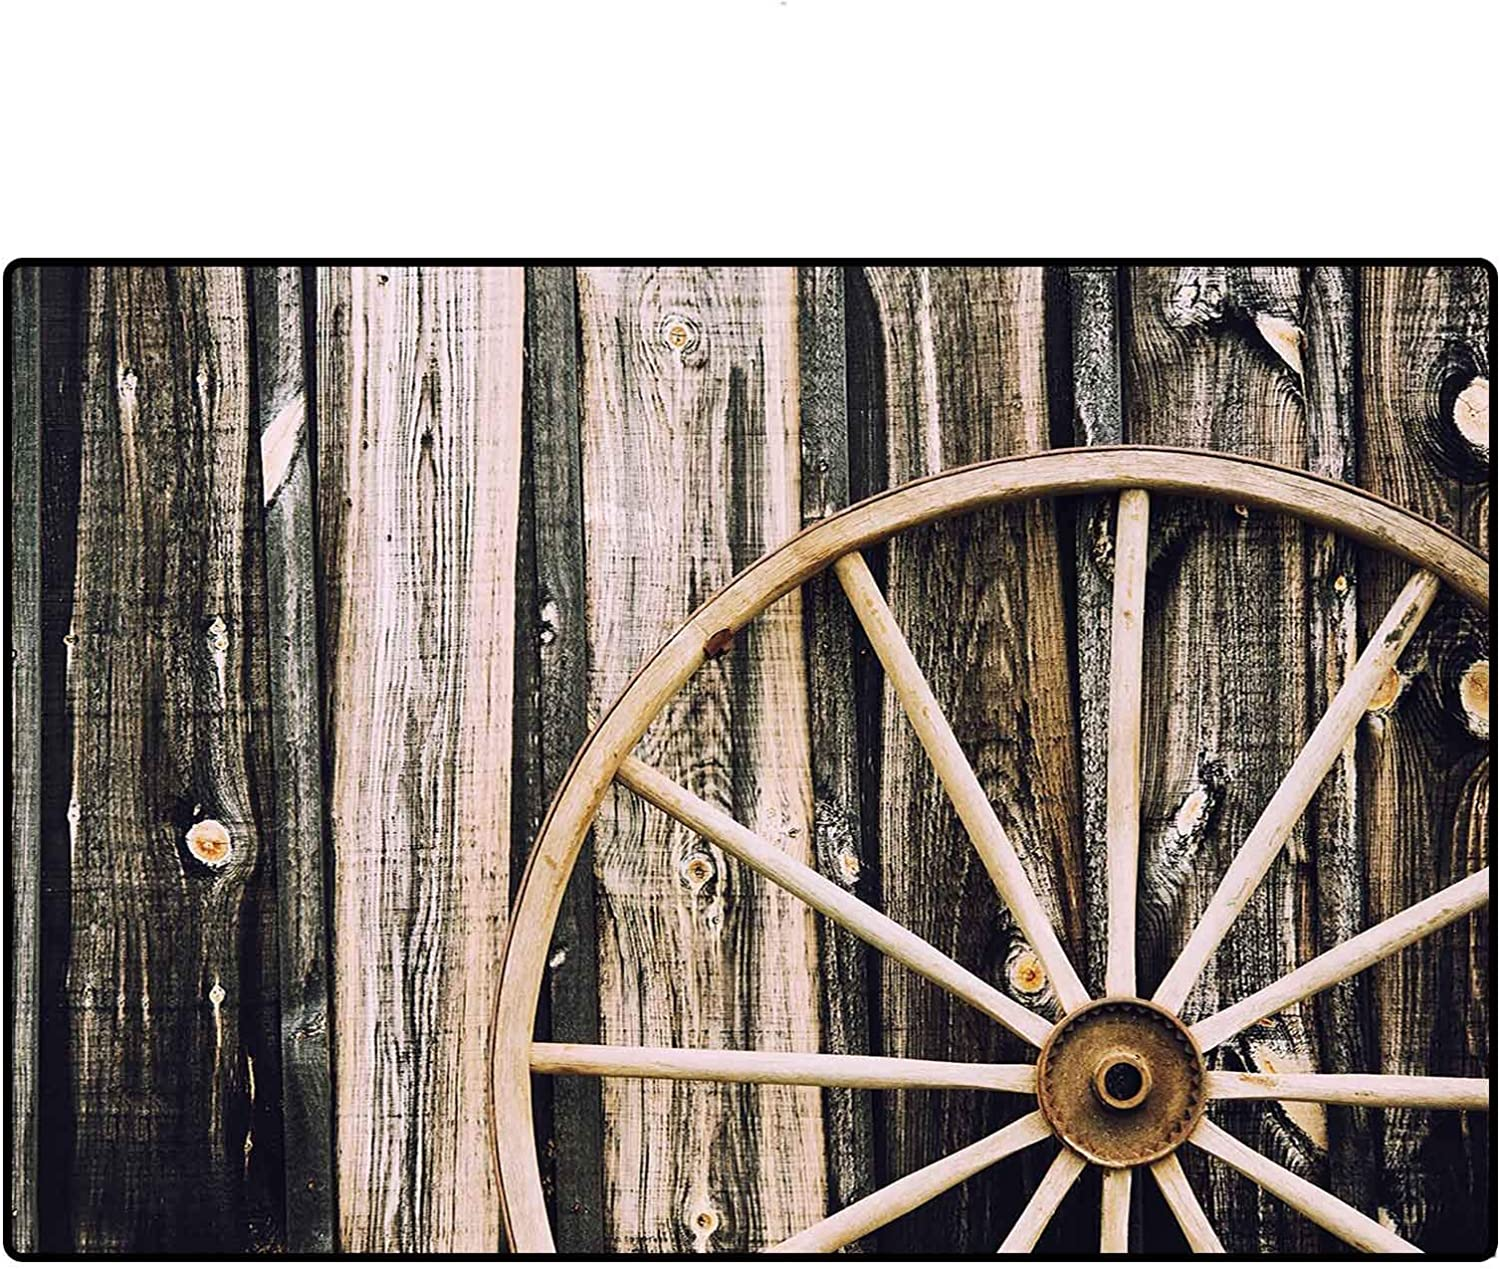 Barn Wood Wagon Wheel Rugs and Carpets 2x3 Ft, Wooden Barn Door and Vintage Rusty Wheel Rustic Home Farm Personality Rugs, Black Light Brown